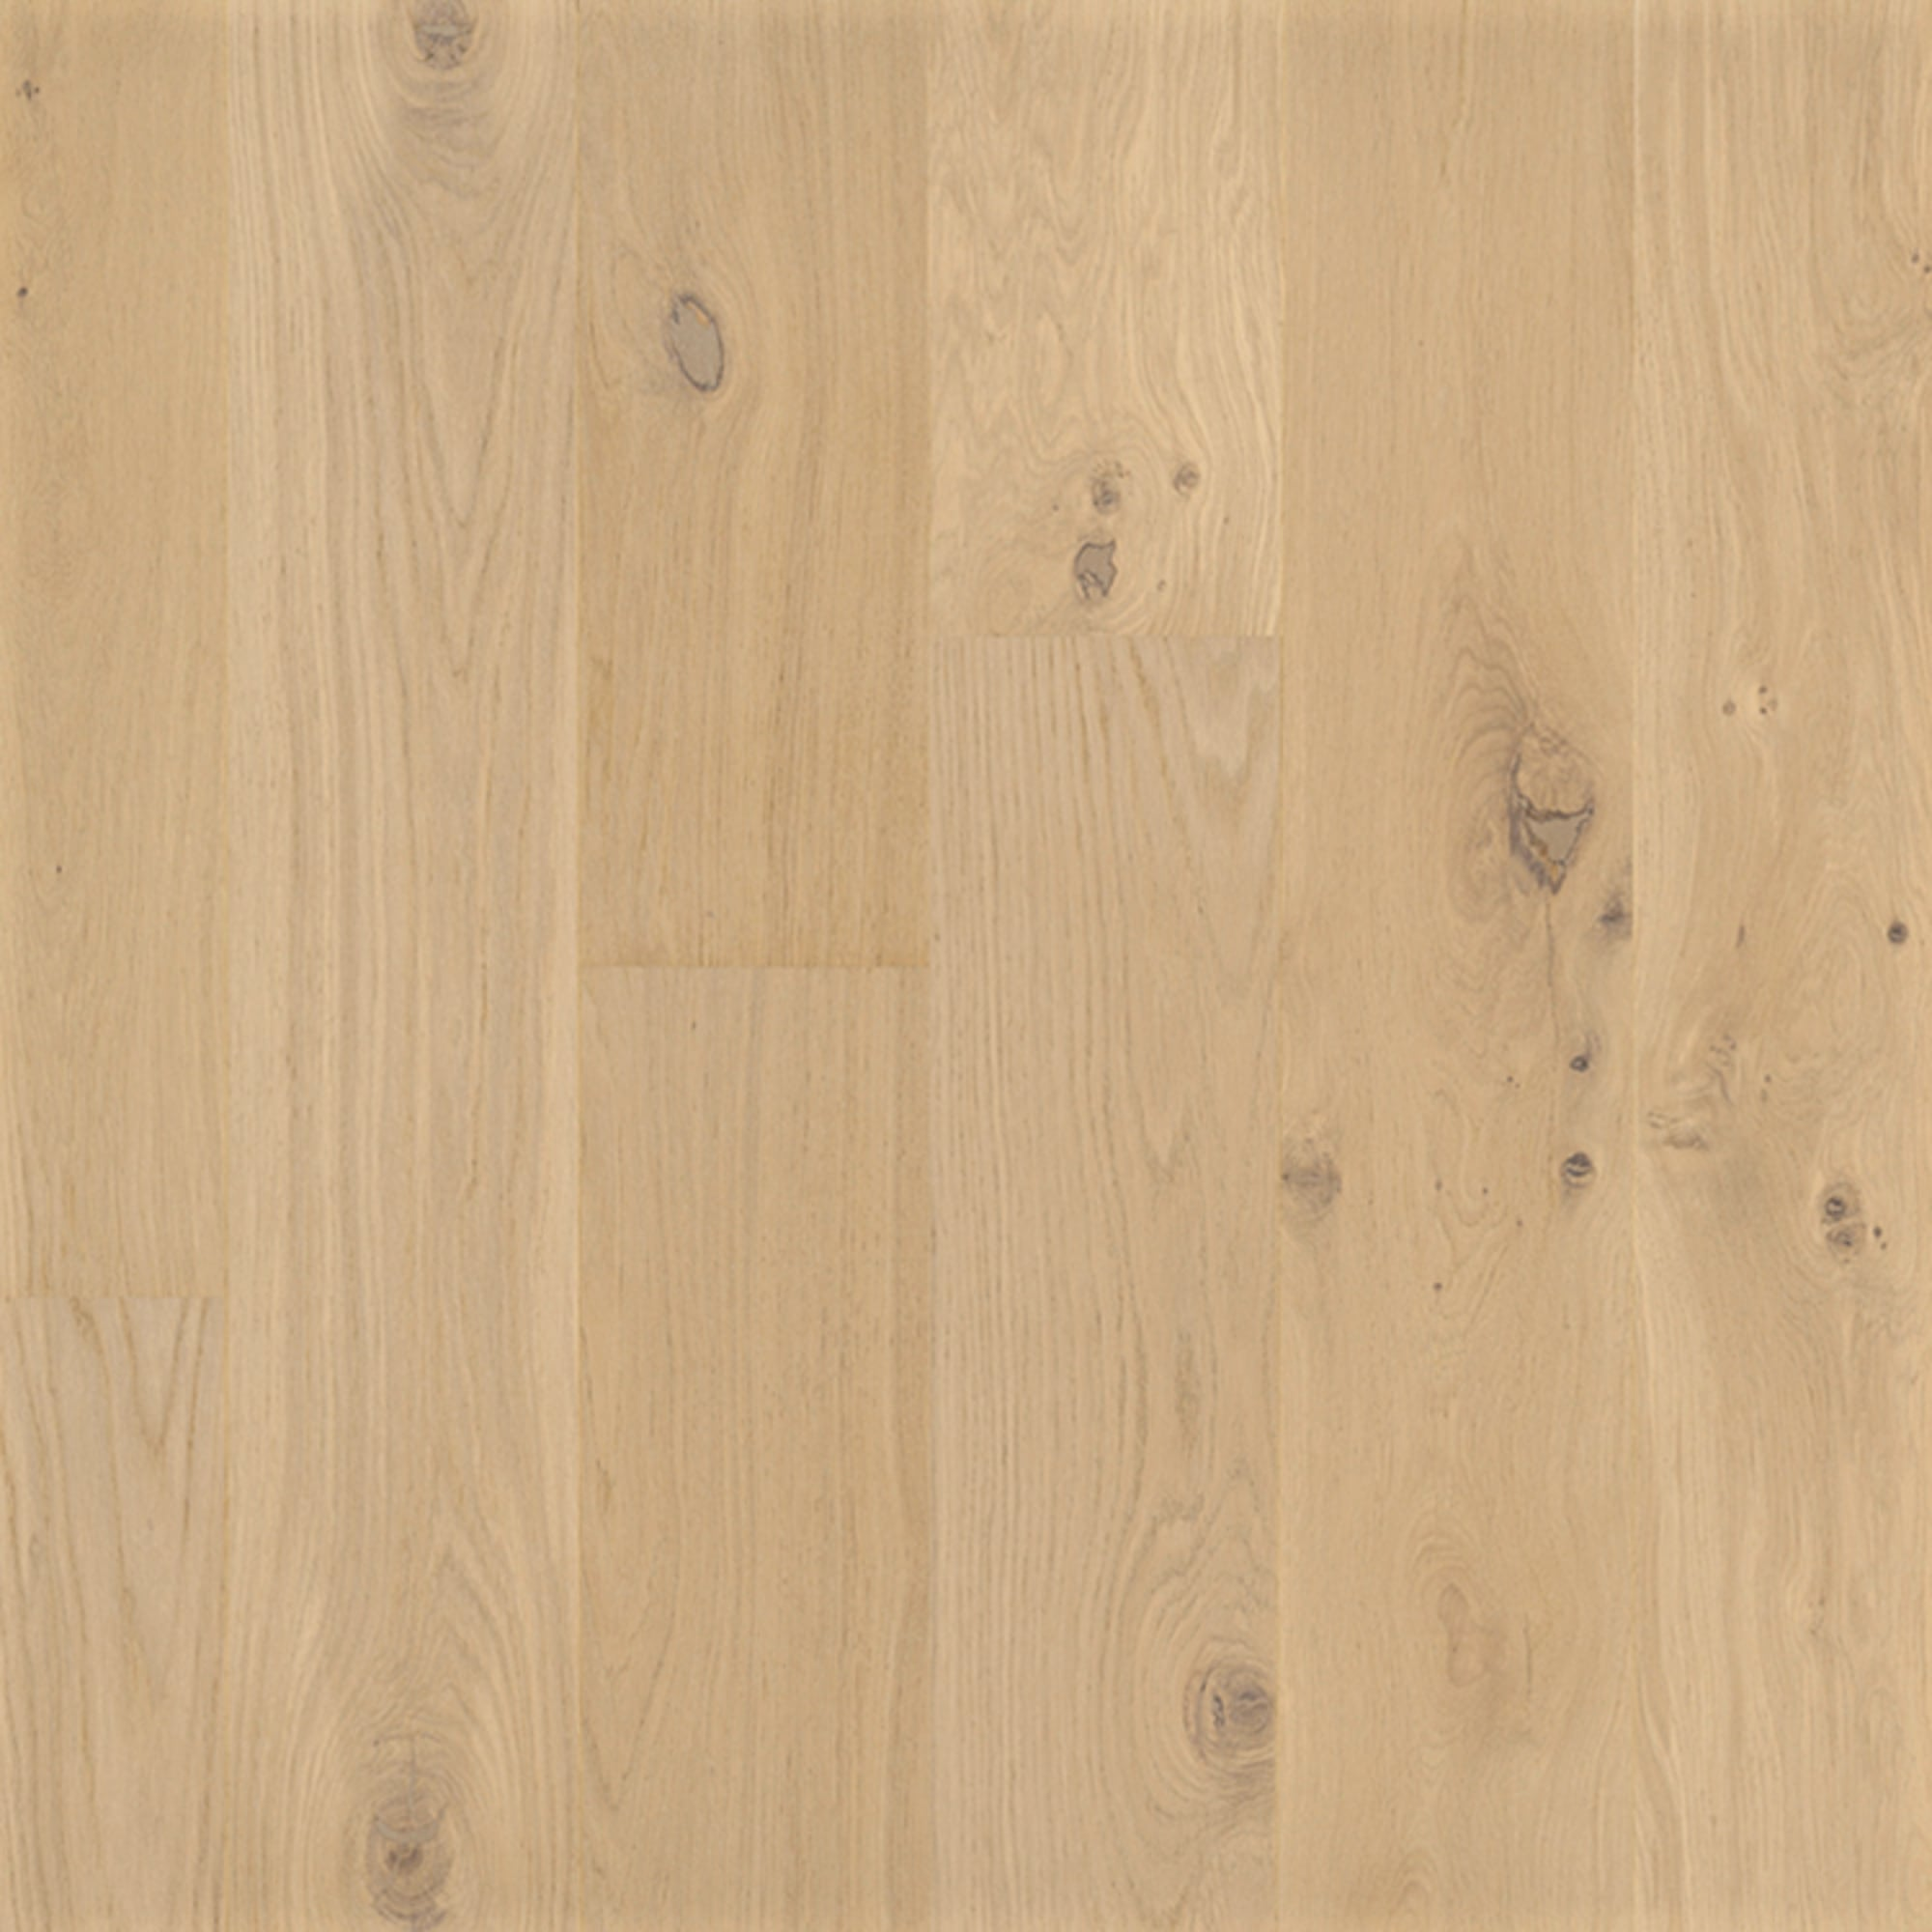 Wood flooring pd200 naturally oiled rustic 13x180mm lyed for Engineered oak flooring